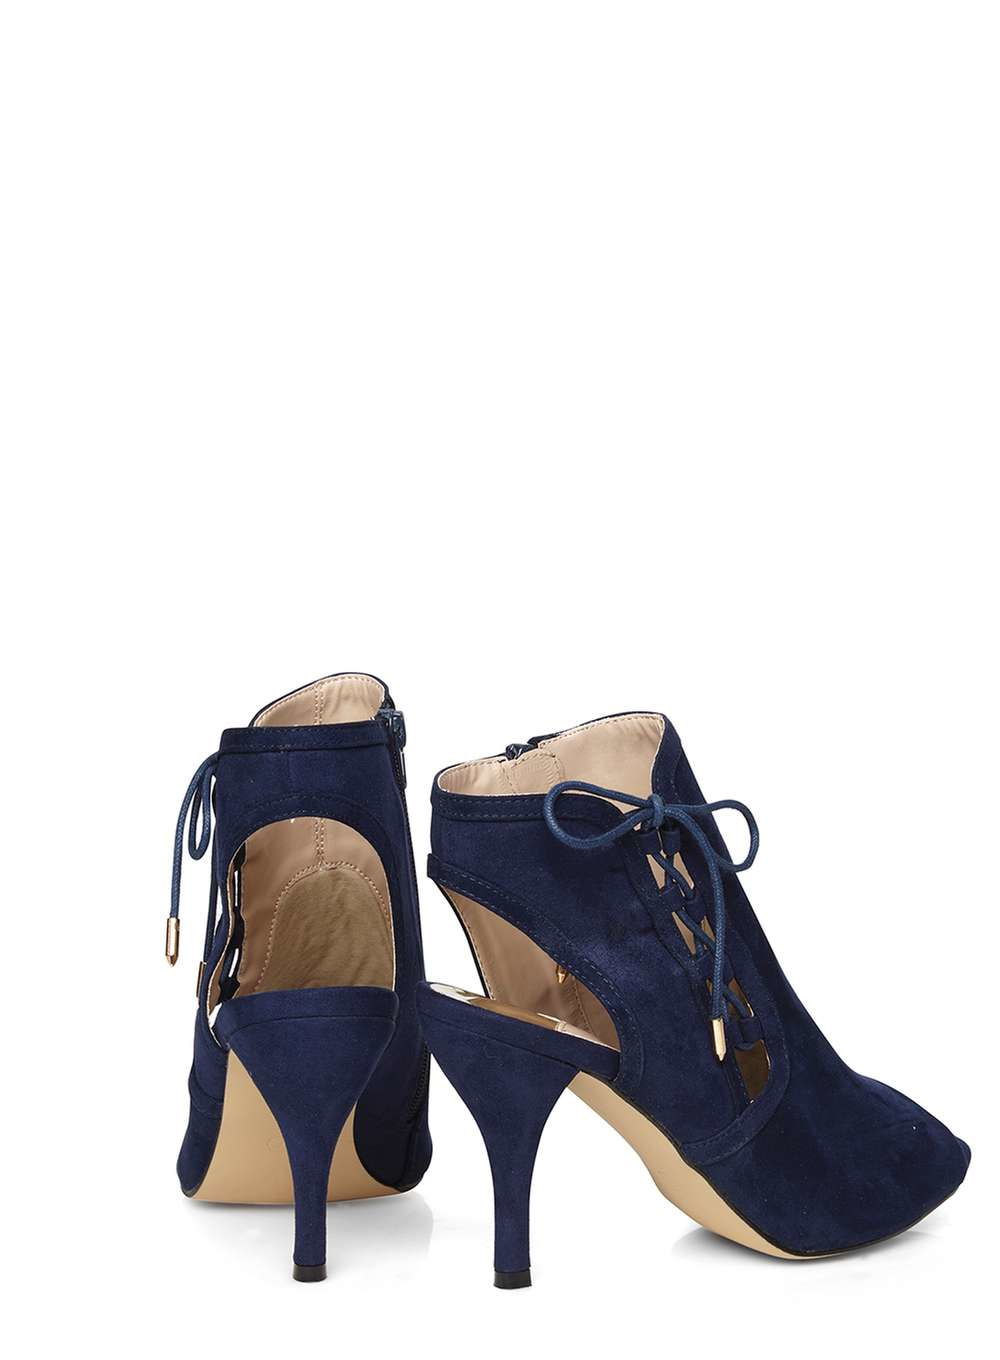 dorothy perkins wide fit navy wishful shoe boots in blue